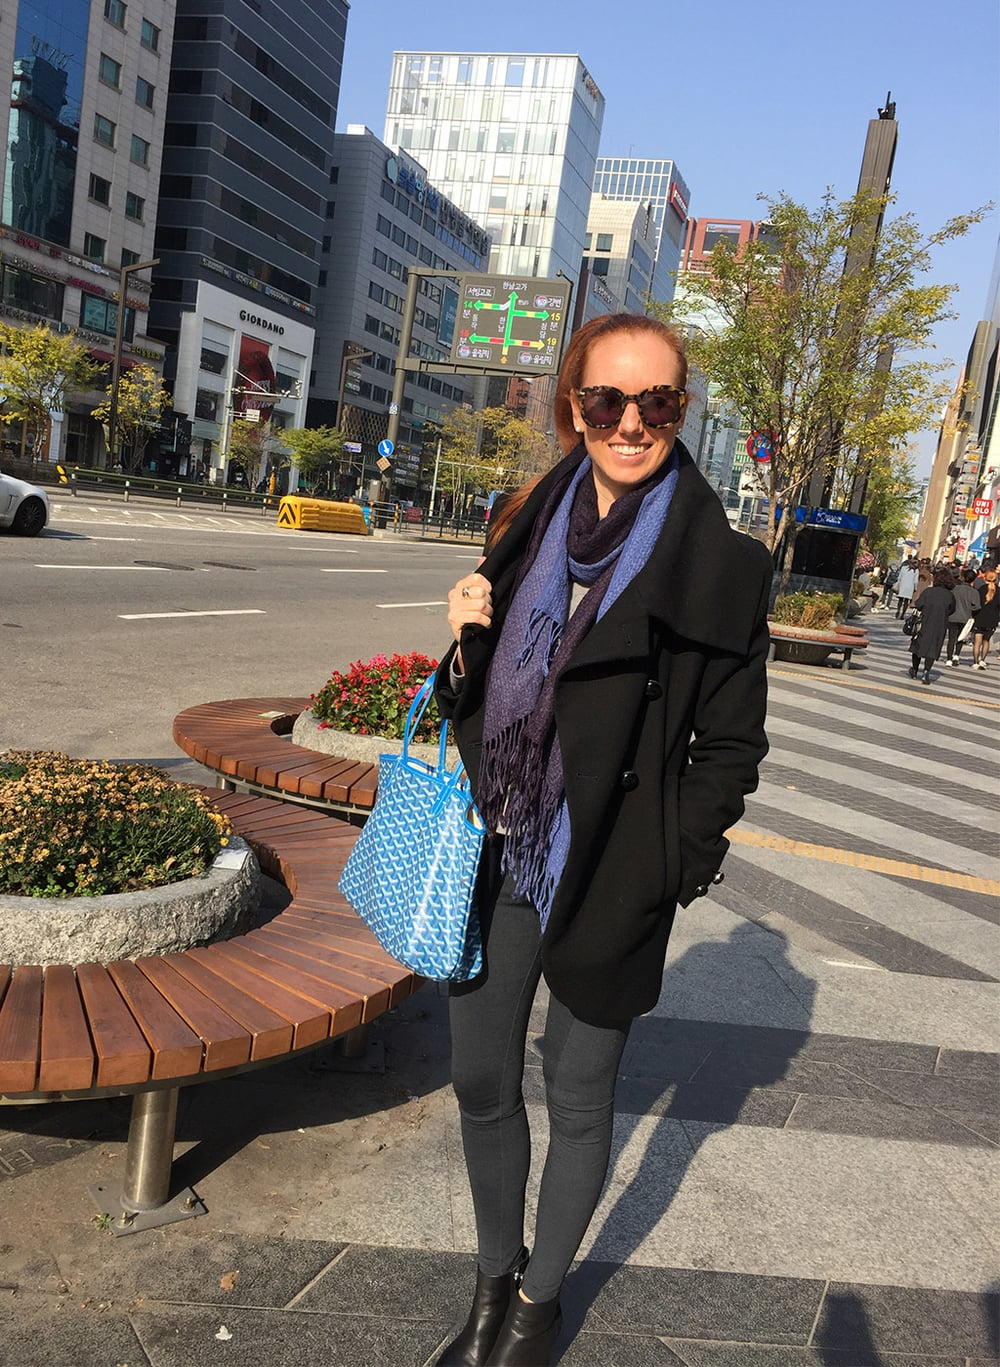 Ainslie in Seoul